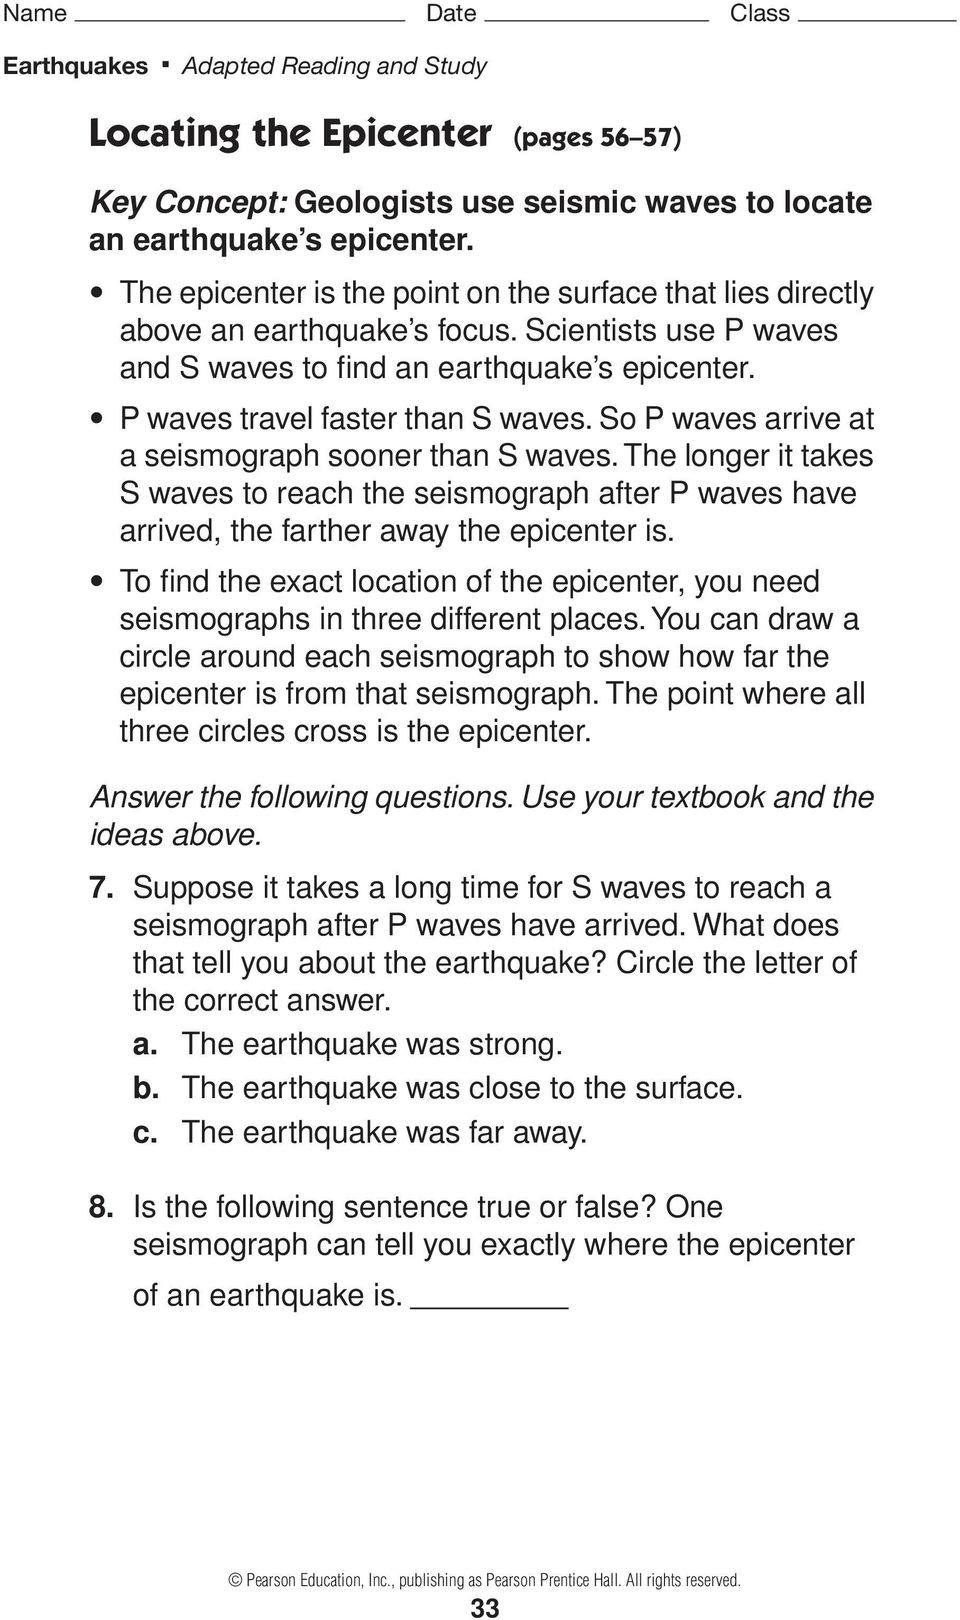 So P waves arrive at a seismograph sooner than S waves. The longer it takes S waves to reach the seismograph after P waves have arrived, the farther away the epicenter is.